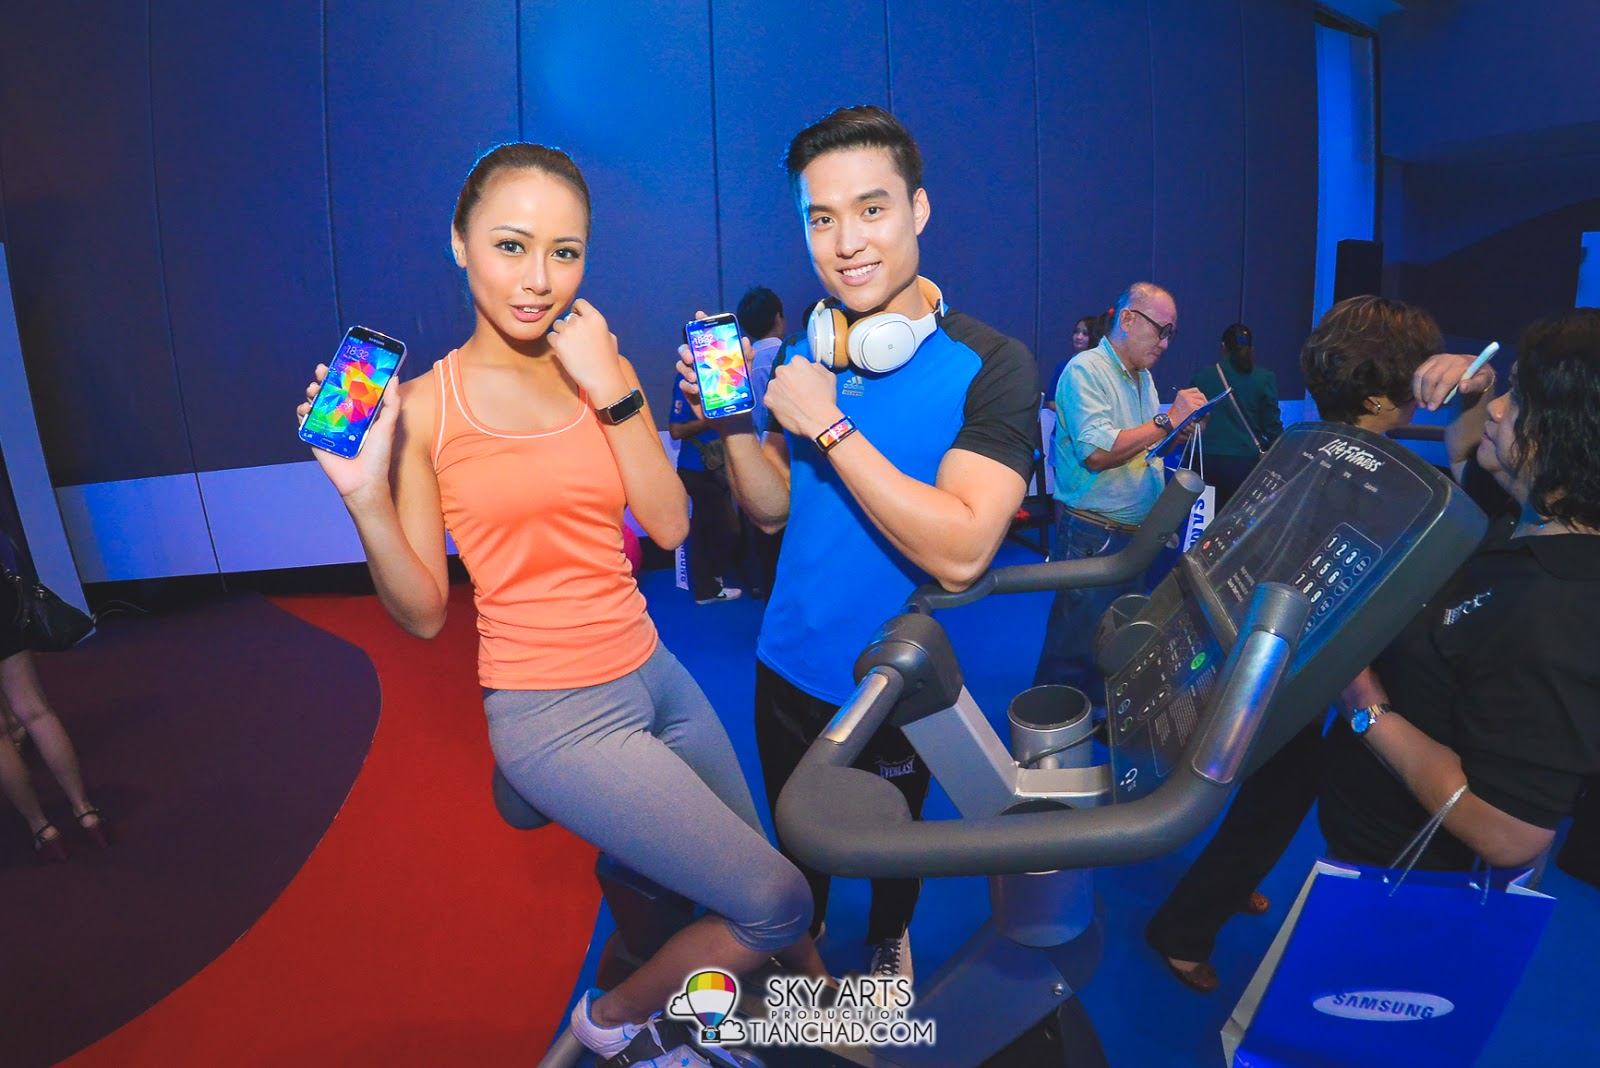 Good looking models showcasing Samsung GALAXY S5 and Samsung Gear Fit